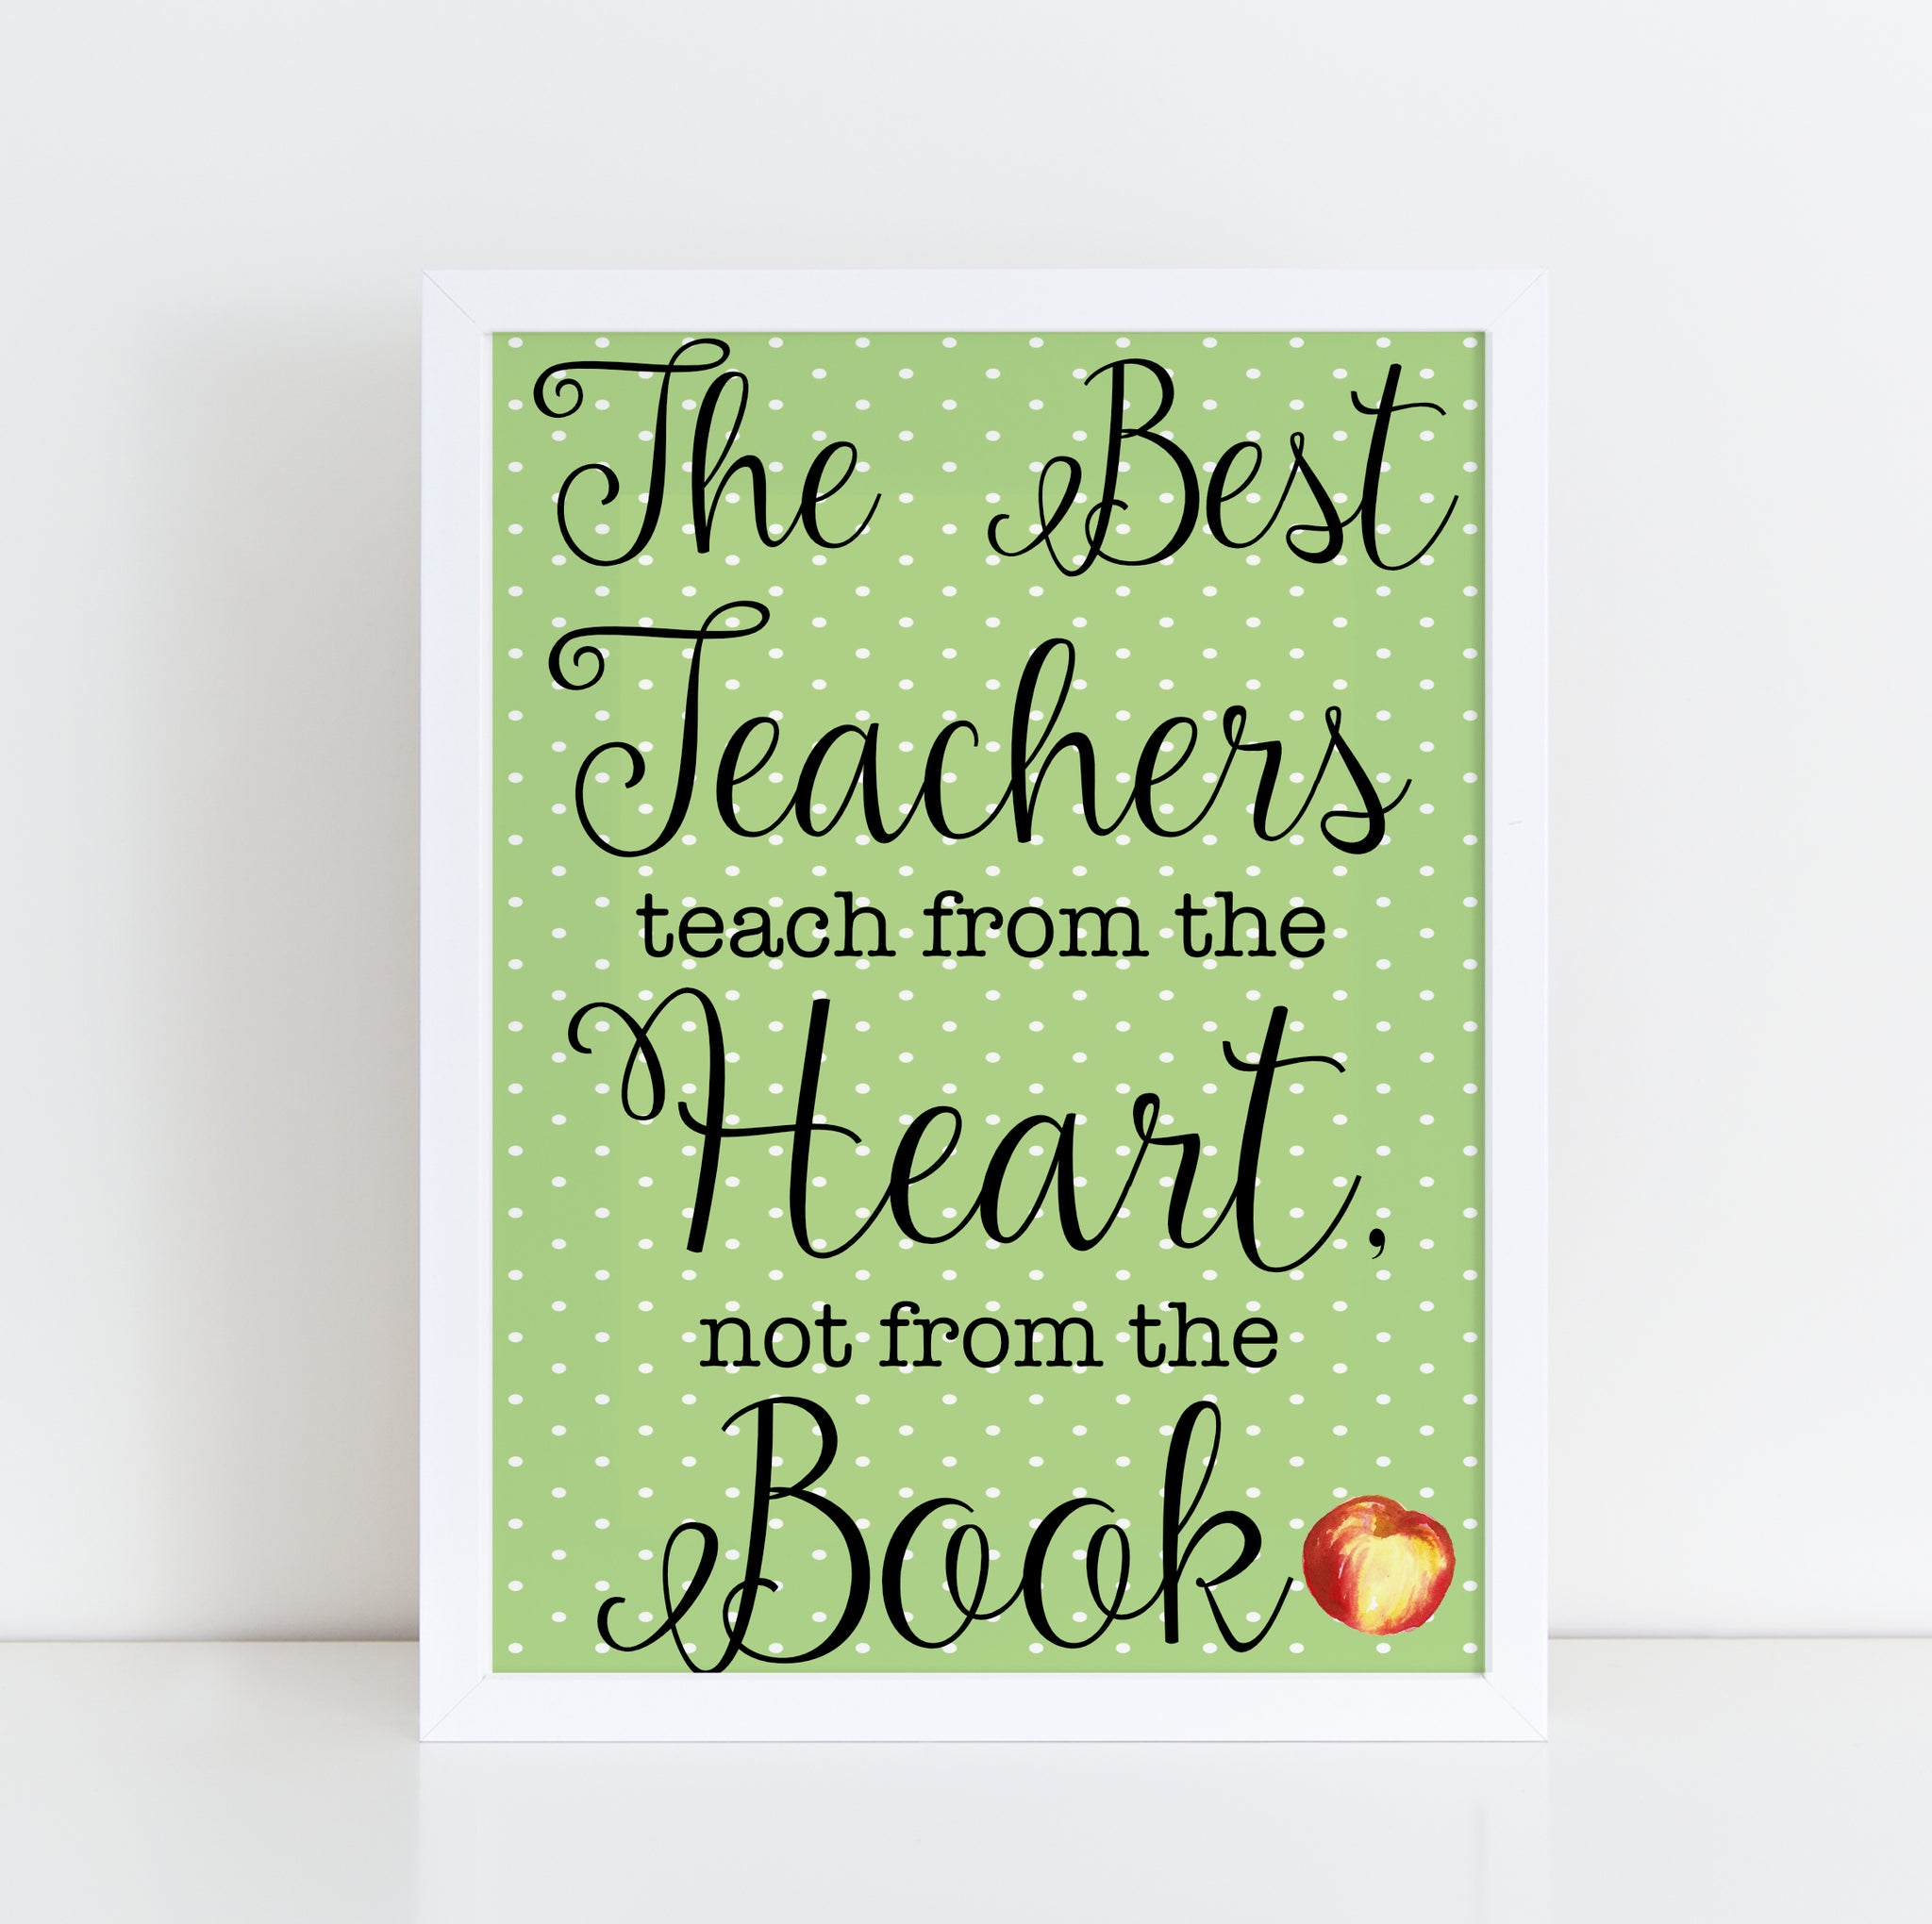 The Best Teachers Teach From The Heart Not From The Book framed print